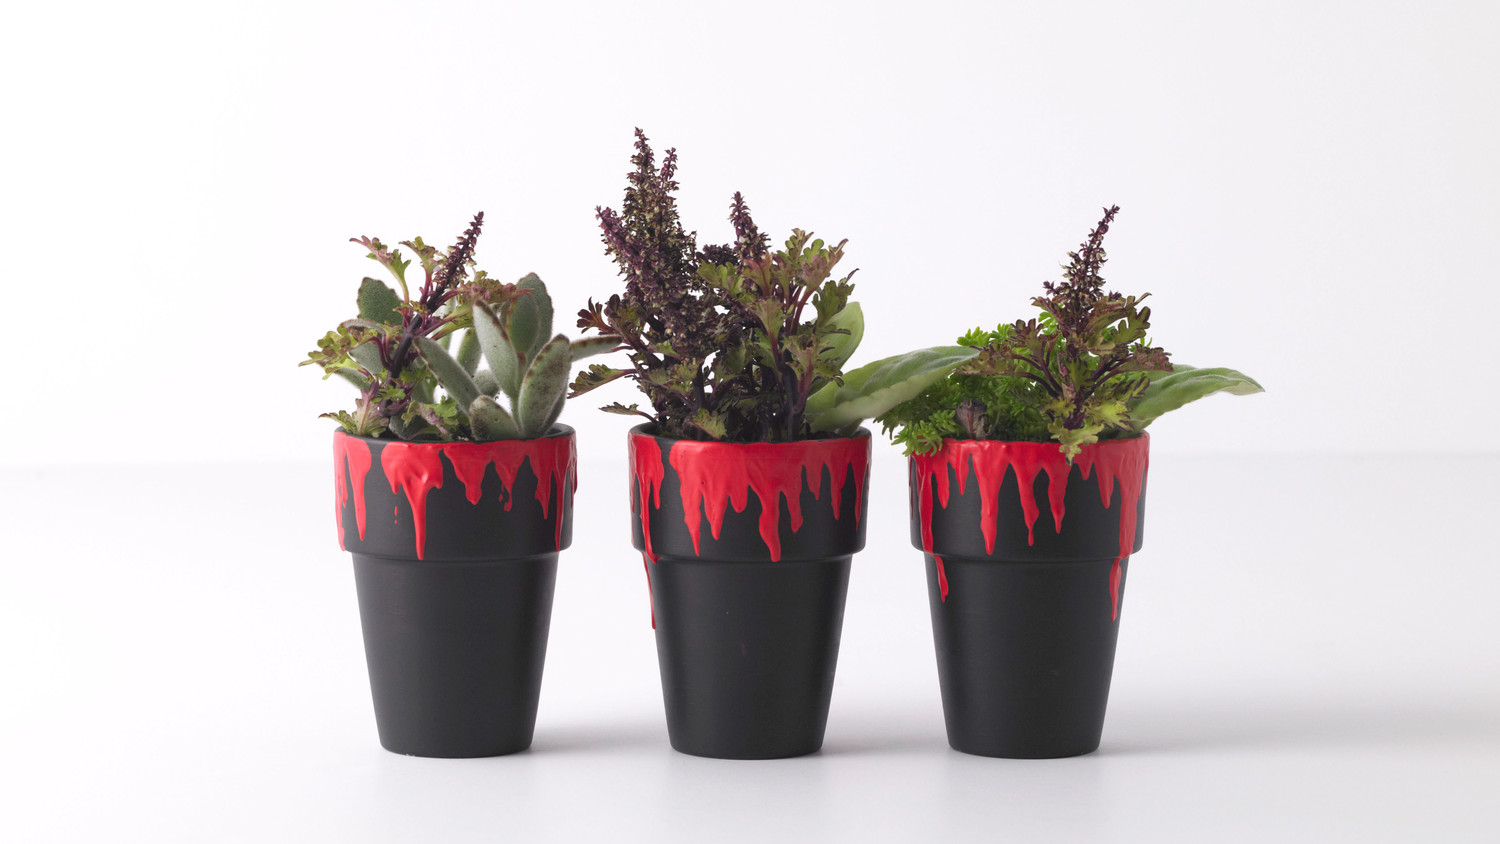 Blood-Drip Planters